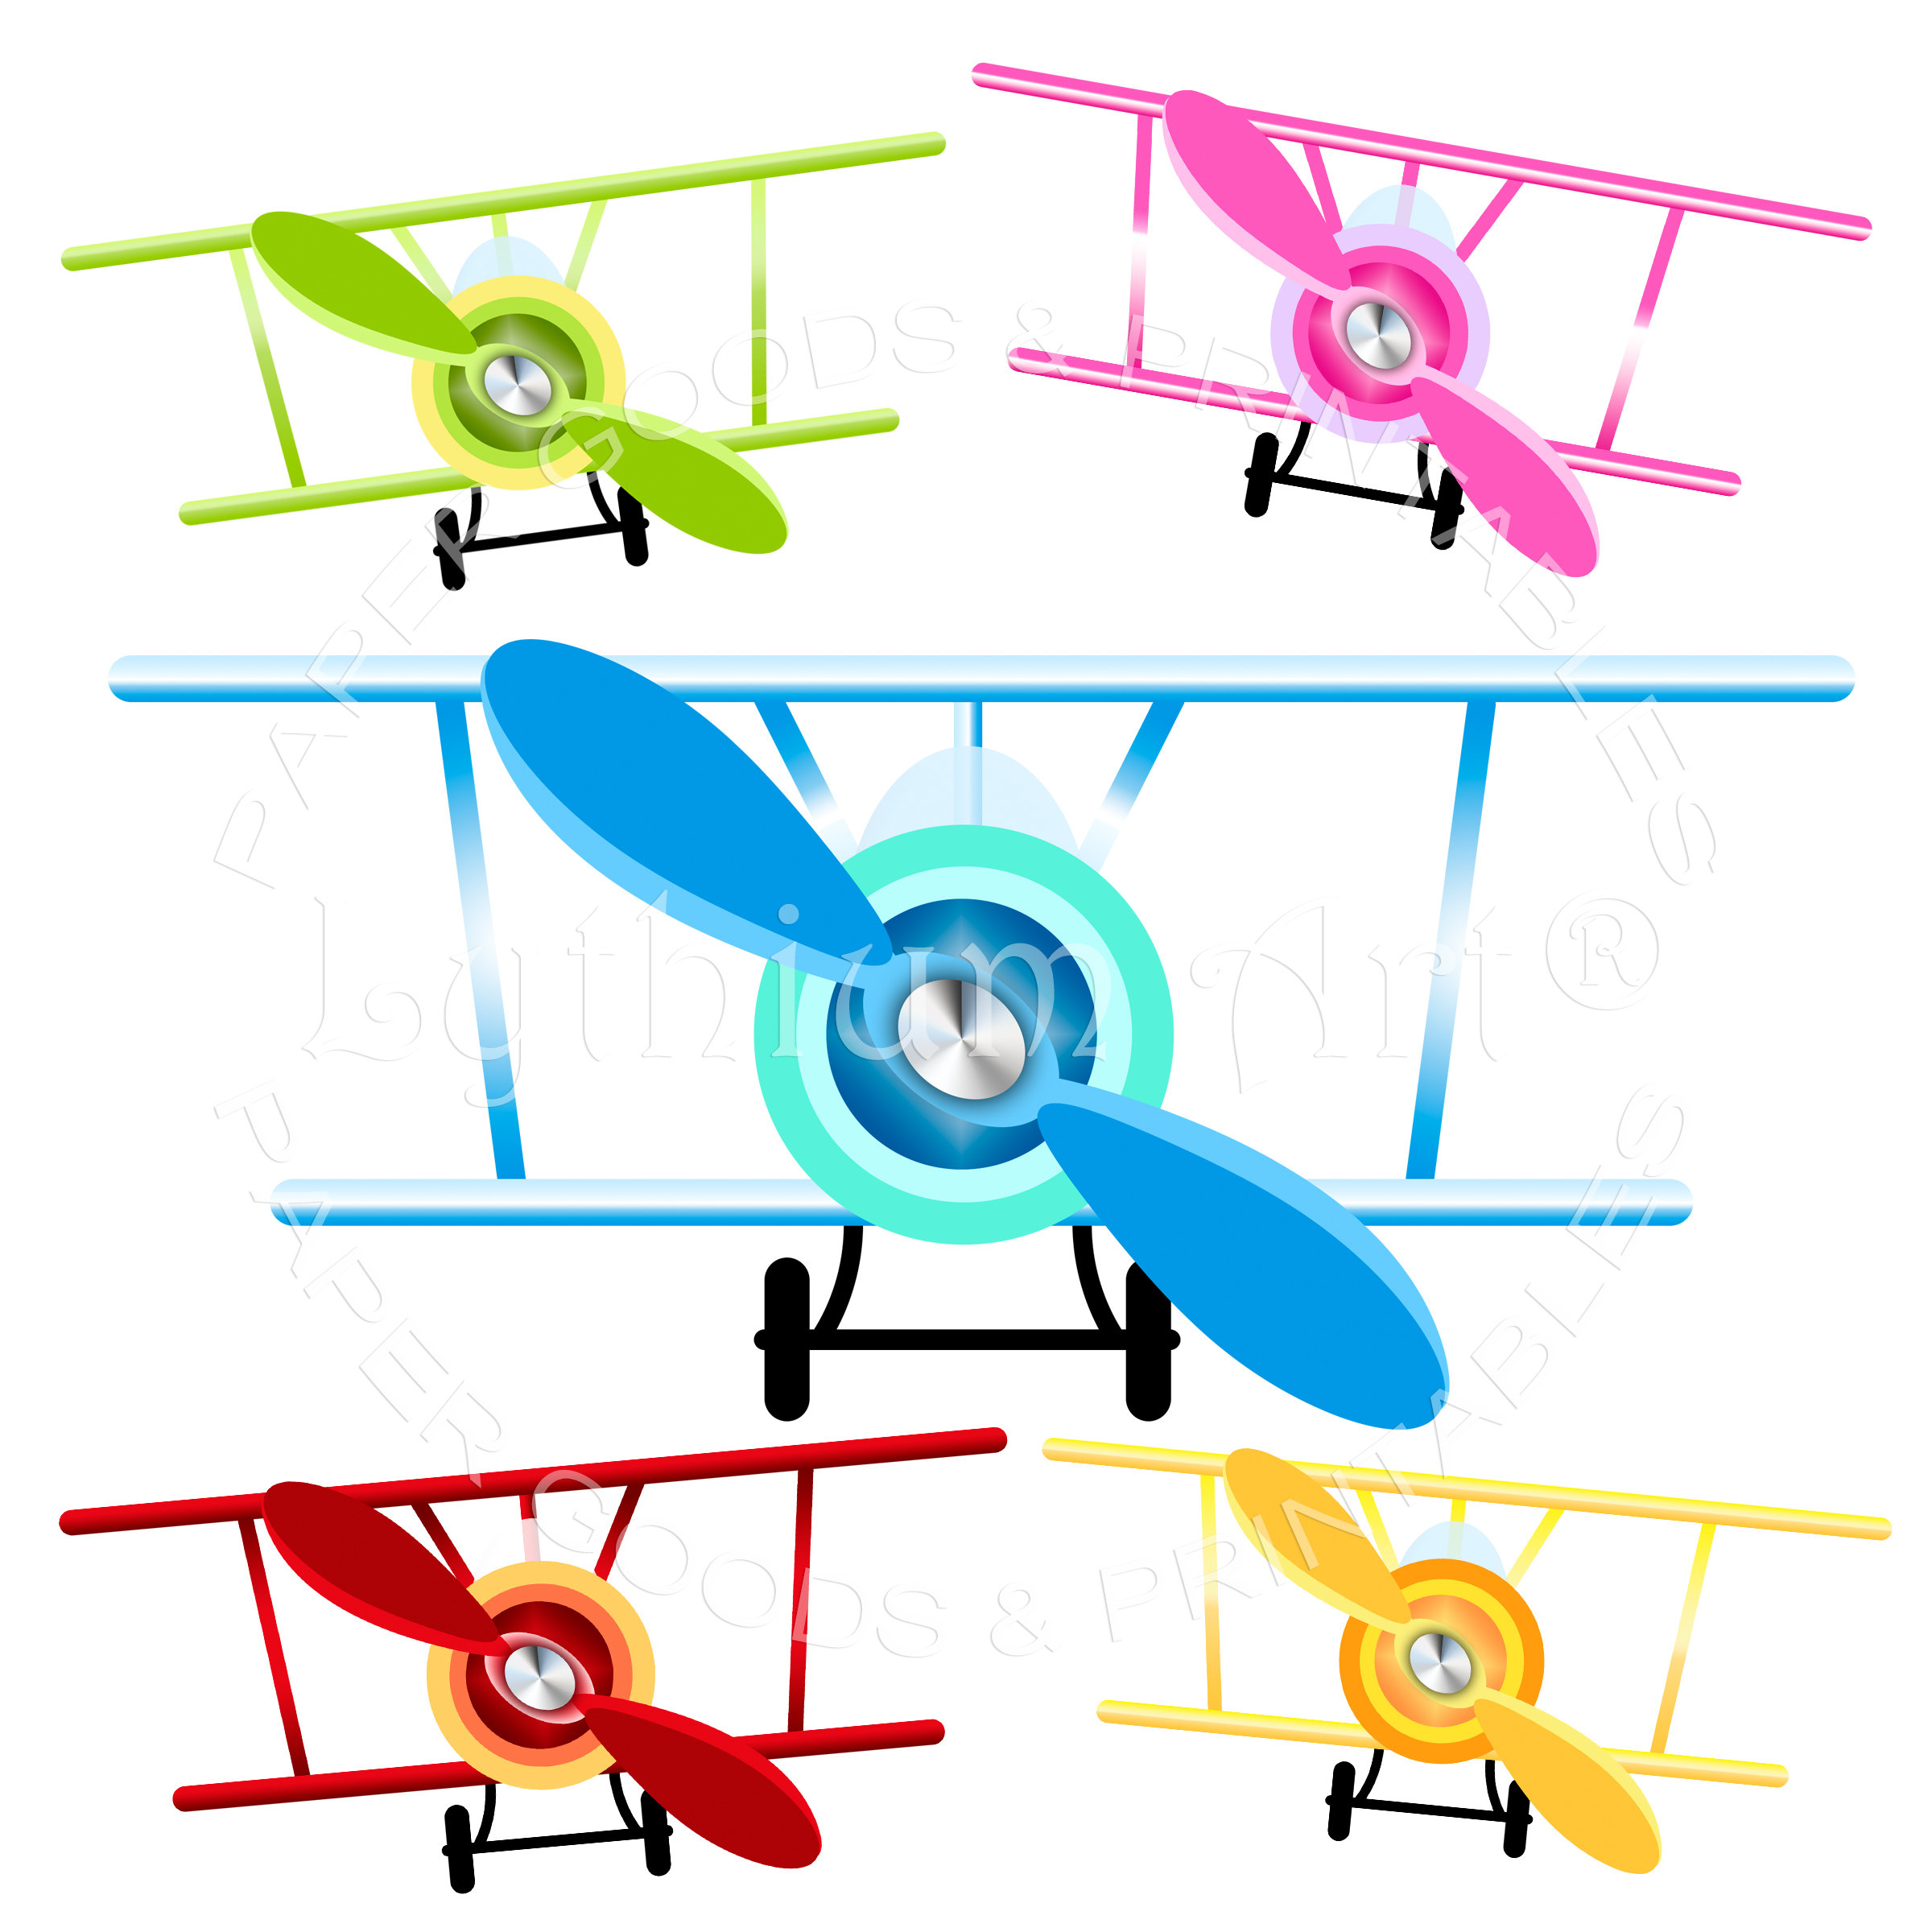 AIRPLANE CLIPART, Airplanes Clipart PNG, Biplane Clipart Transparent  Background, Clip Art Set of Airplanes, Retro Airplane, Instant Download.